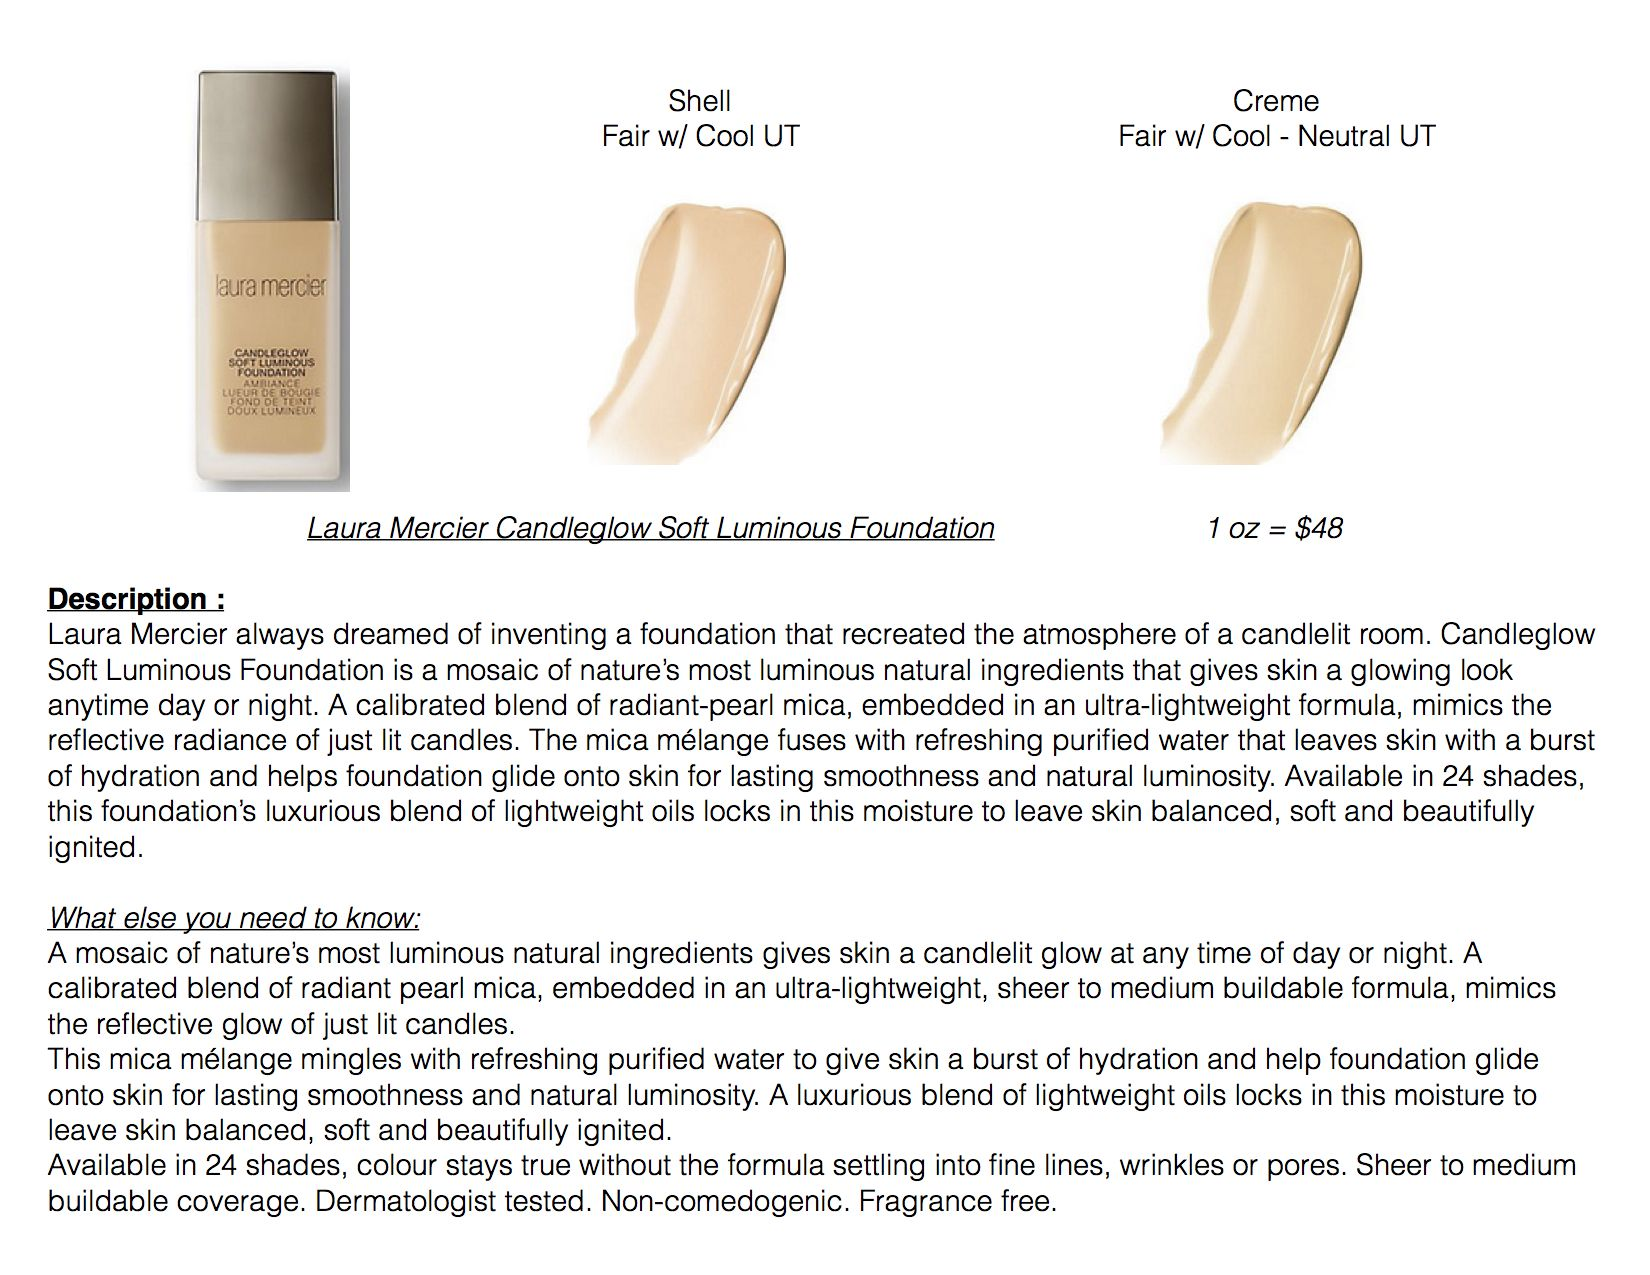 Laura Mercier Candleglow Soft Luminous Foundation (Shown Are Shades For